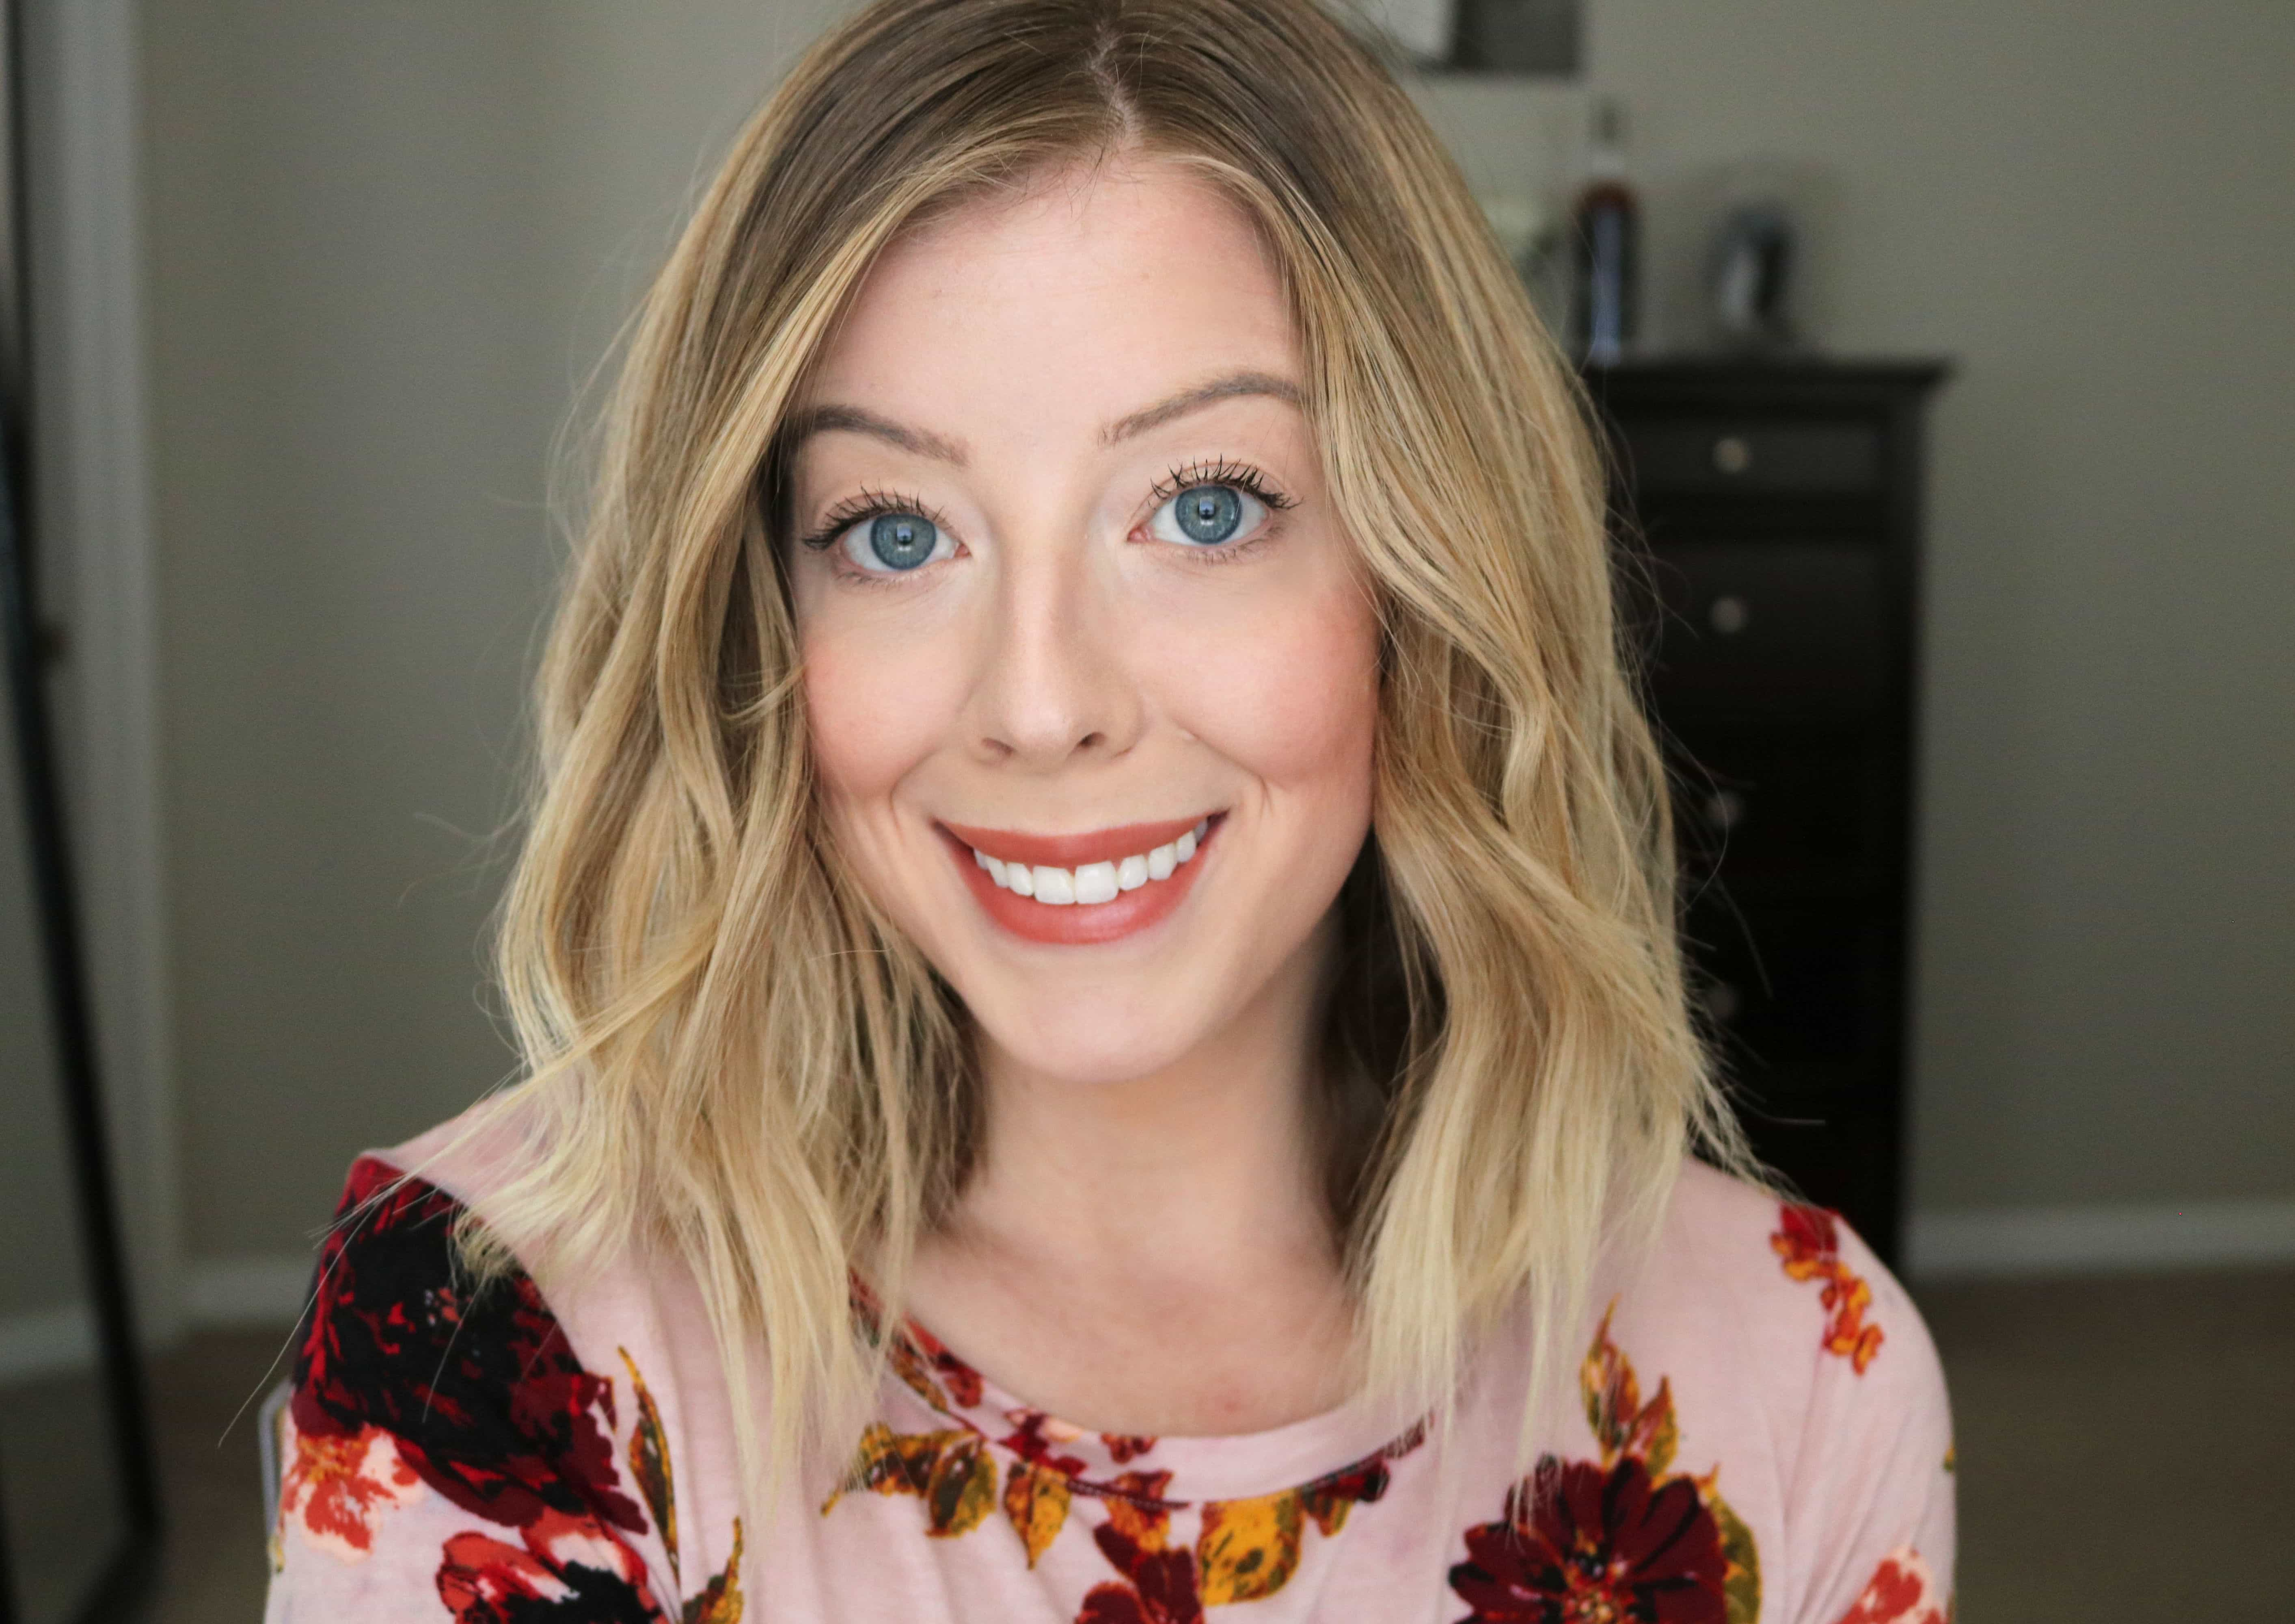 Create this pretty, natural makeup look using products from the new Physicians Formula Organic Wear Makeup Collection. Check out my full drugstore makeup review plus products used in the post! #ad #physiciansformula #organicwear #walmartbeauty #drugstoremakeup